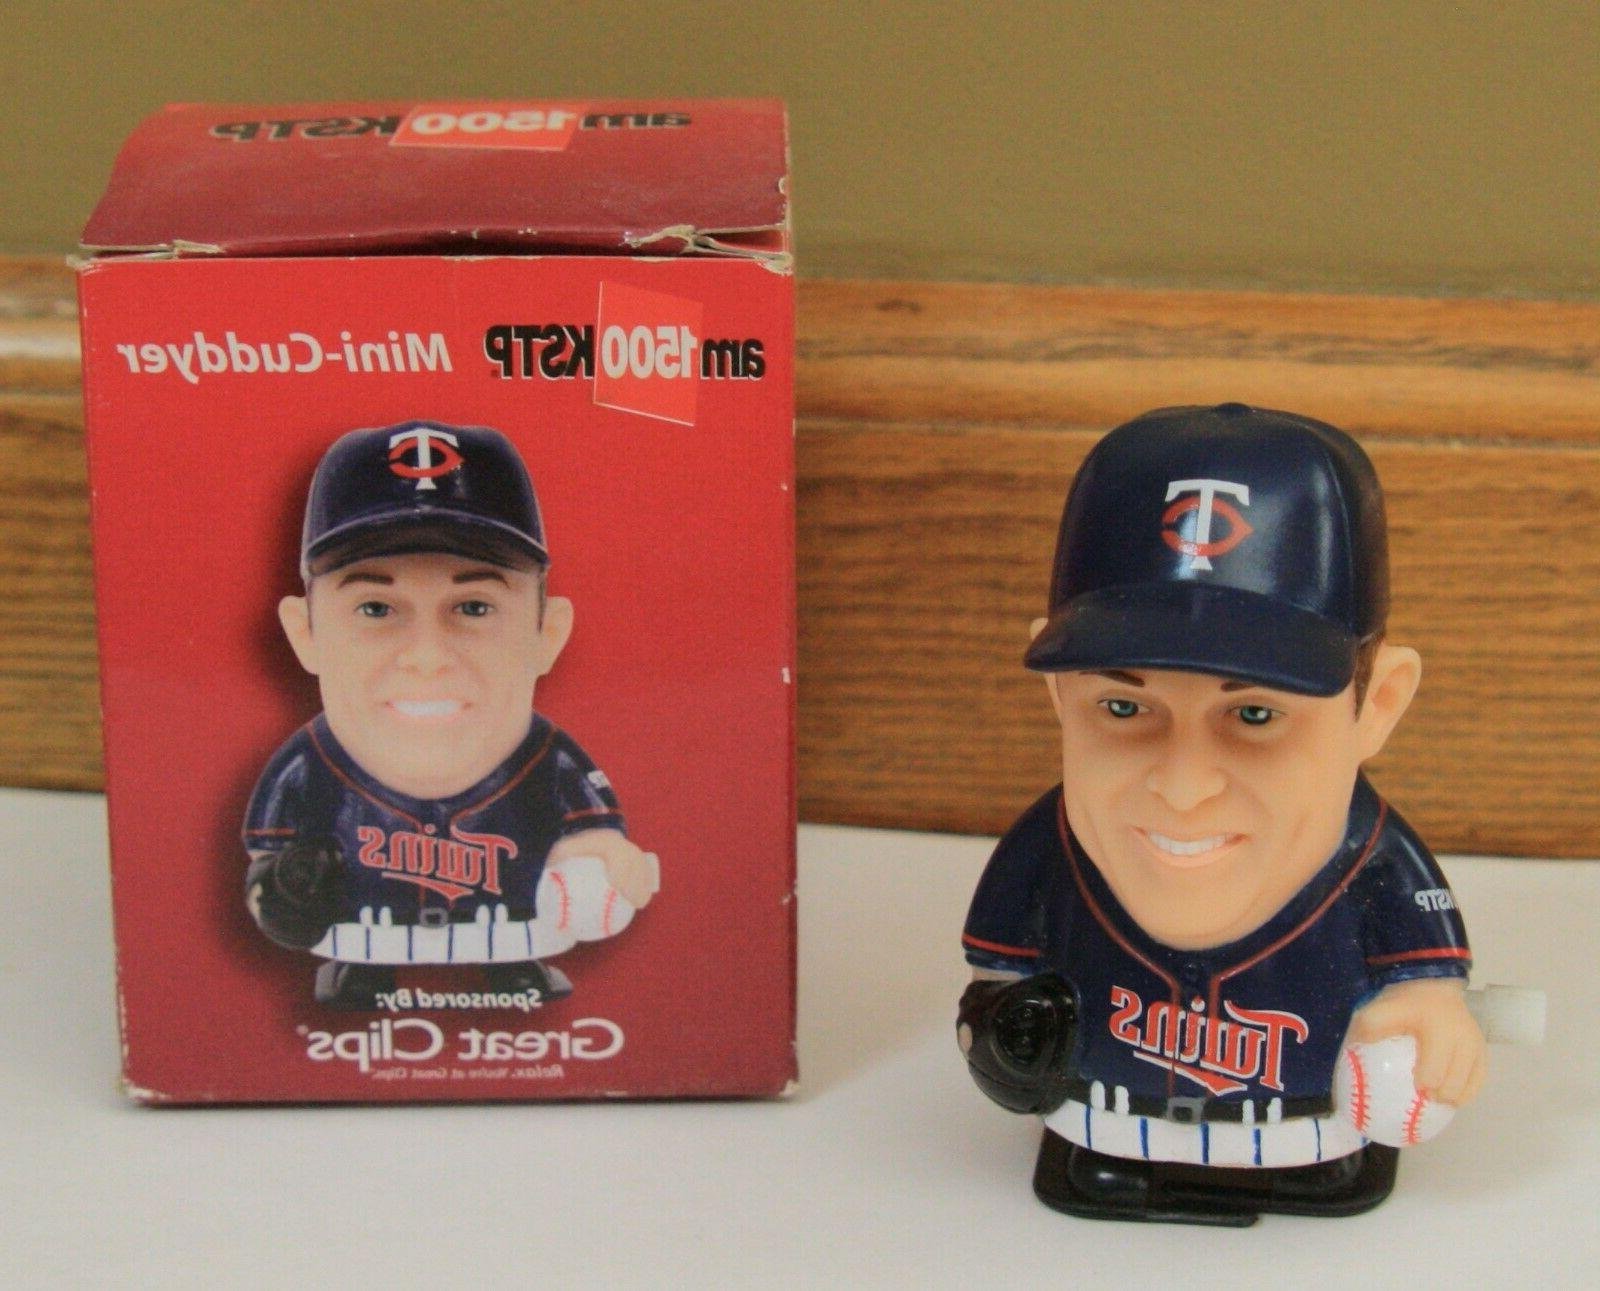 Vintage Twins Cuddyer toy